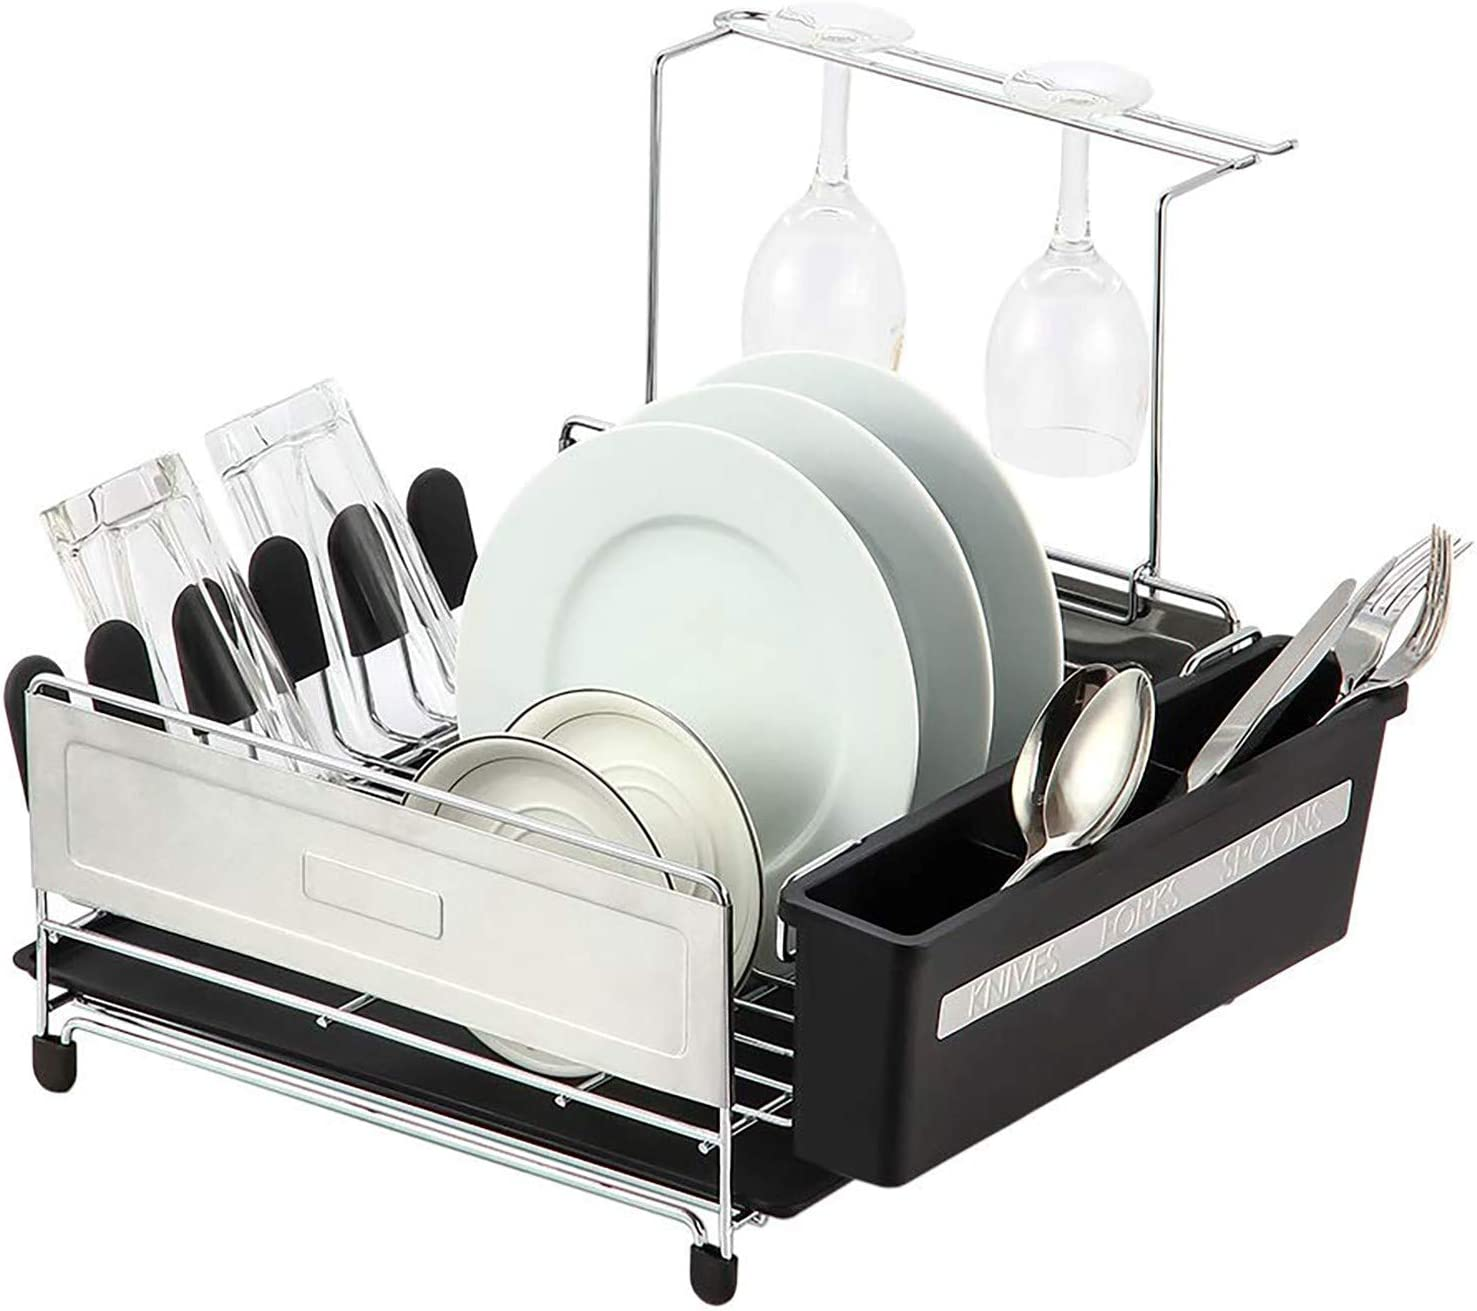 Home Basics Stainless Steel Dish Drying Rack and Drain Board Set, Black